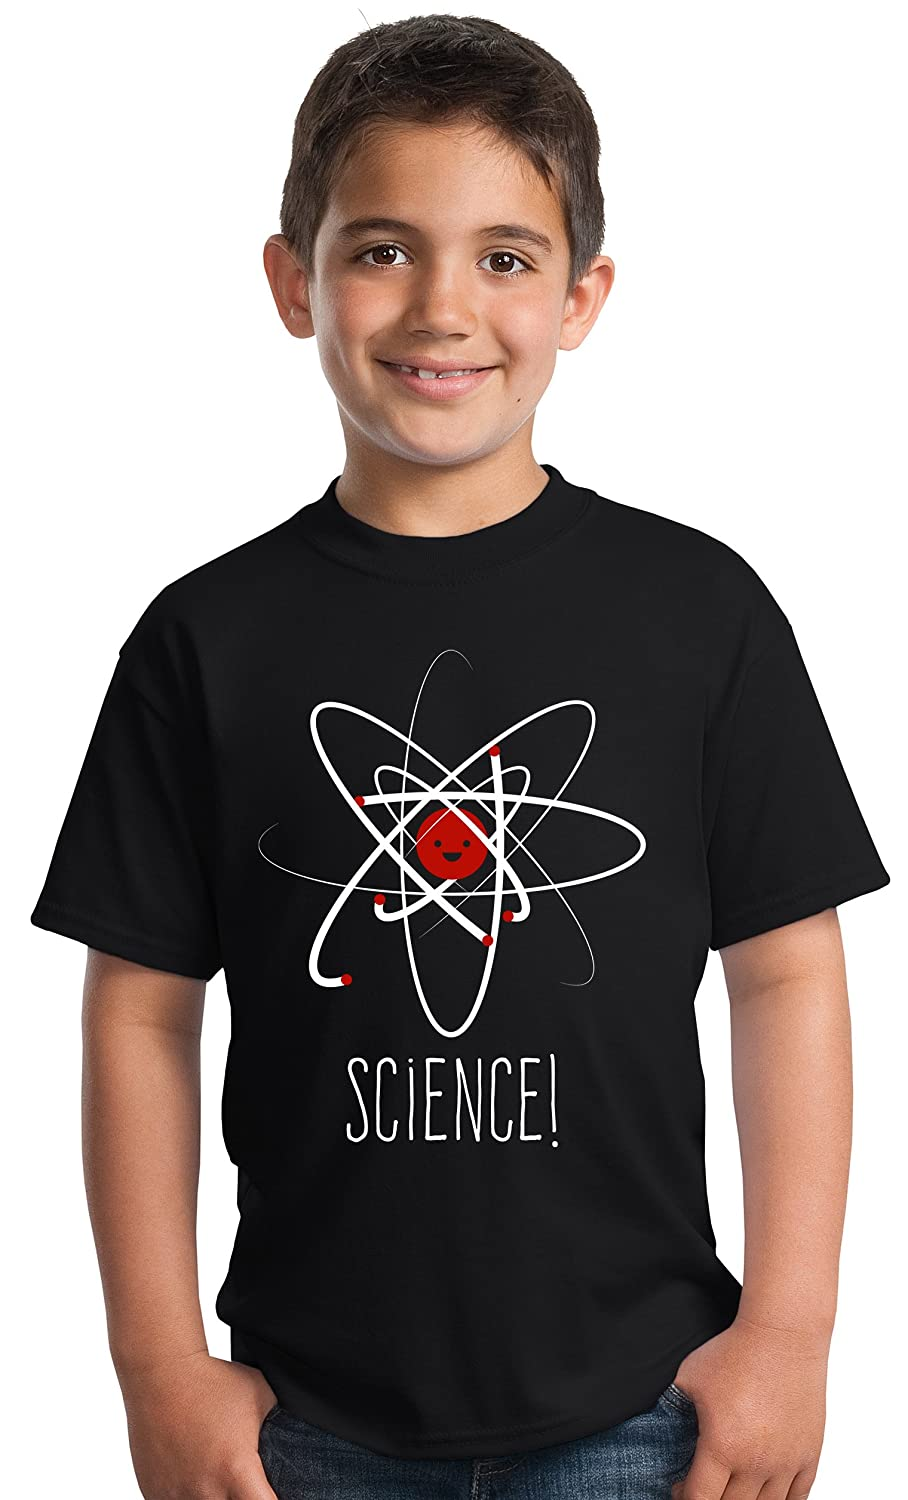 SCIENCE! | Cute Unisex Boy Girl Scientific Student Chemistry Fun Youth T-shirt Ann Arbor T-shirt Co. 0-sib_science-youth